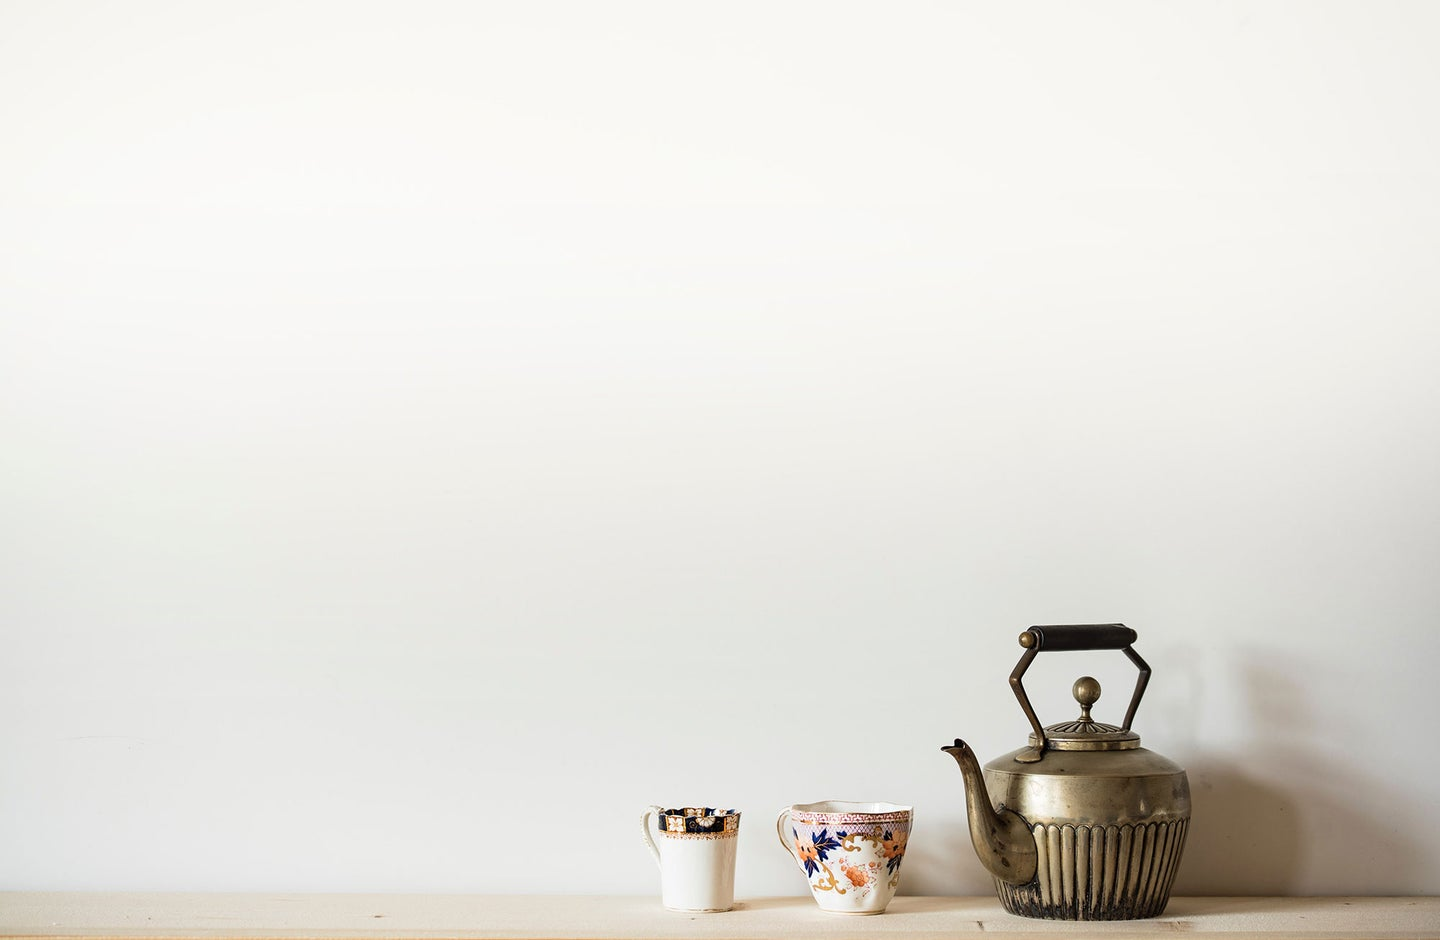 Brass teapot with patterned tea cups.